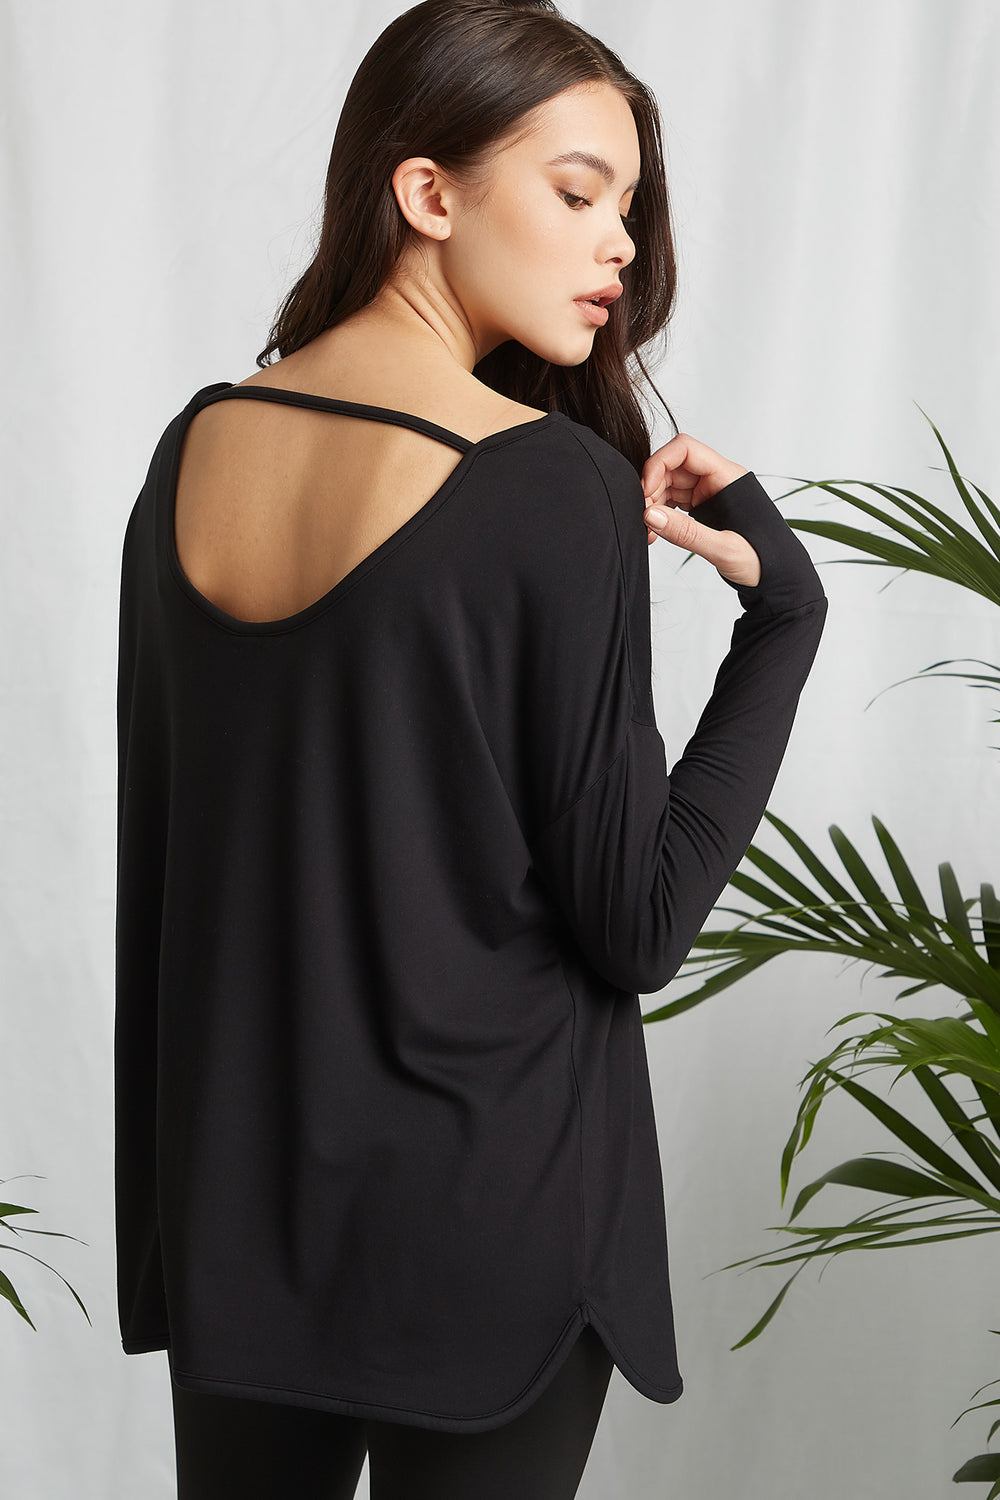 REPREVE®Eco-Friendly Recycled Polyester Keyhole Back Active Long Sleeve Black